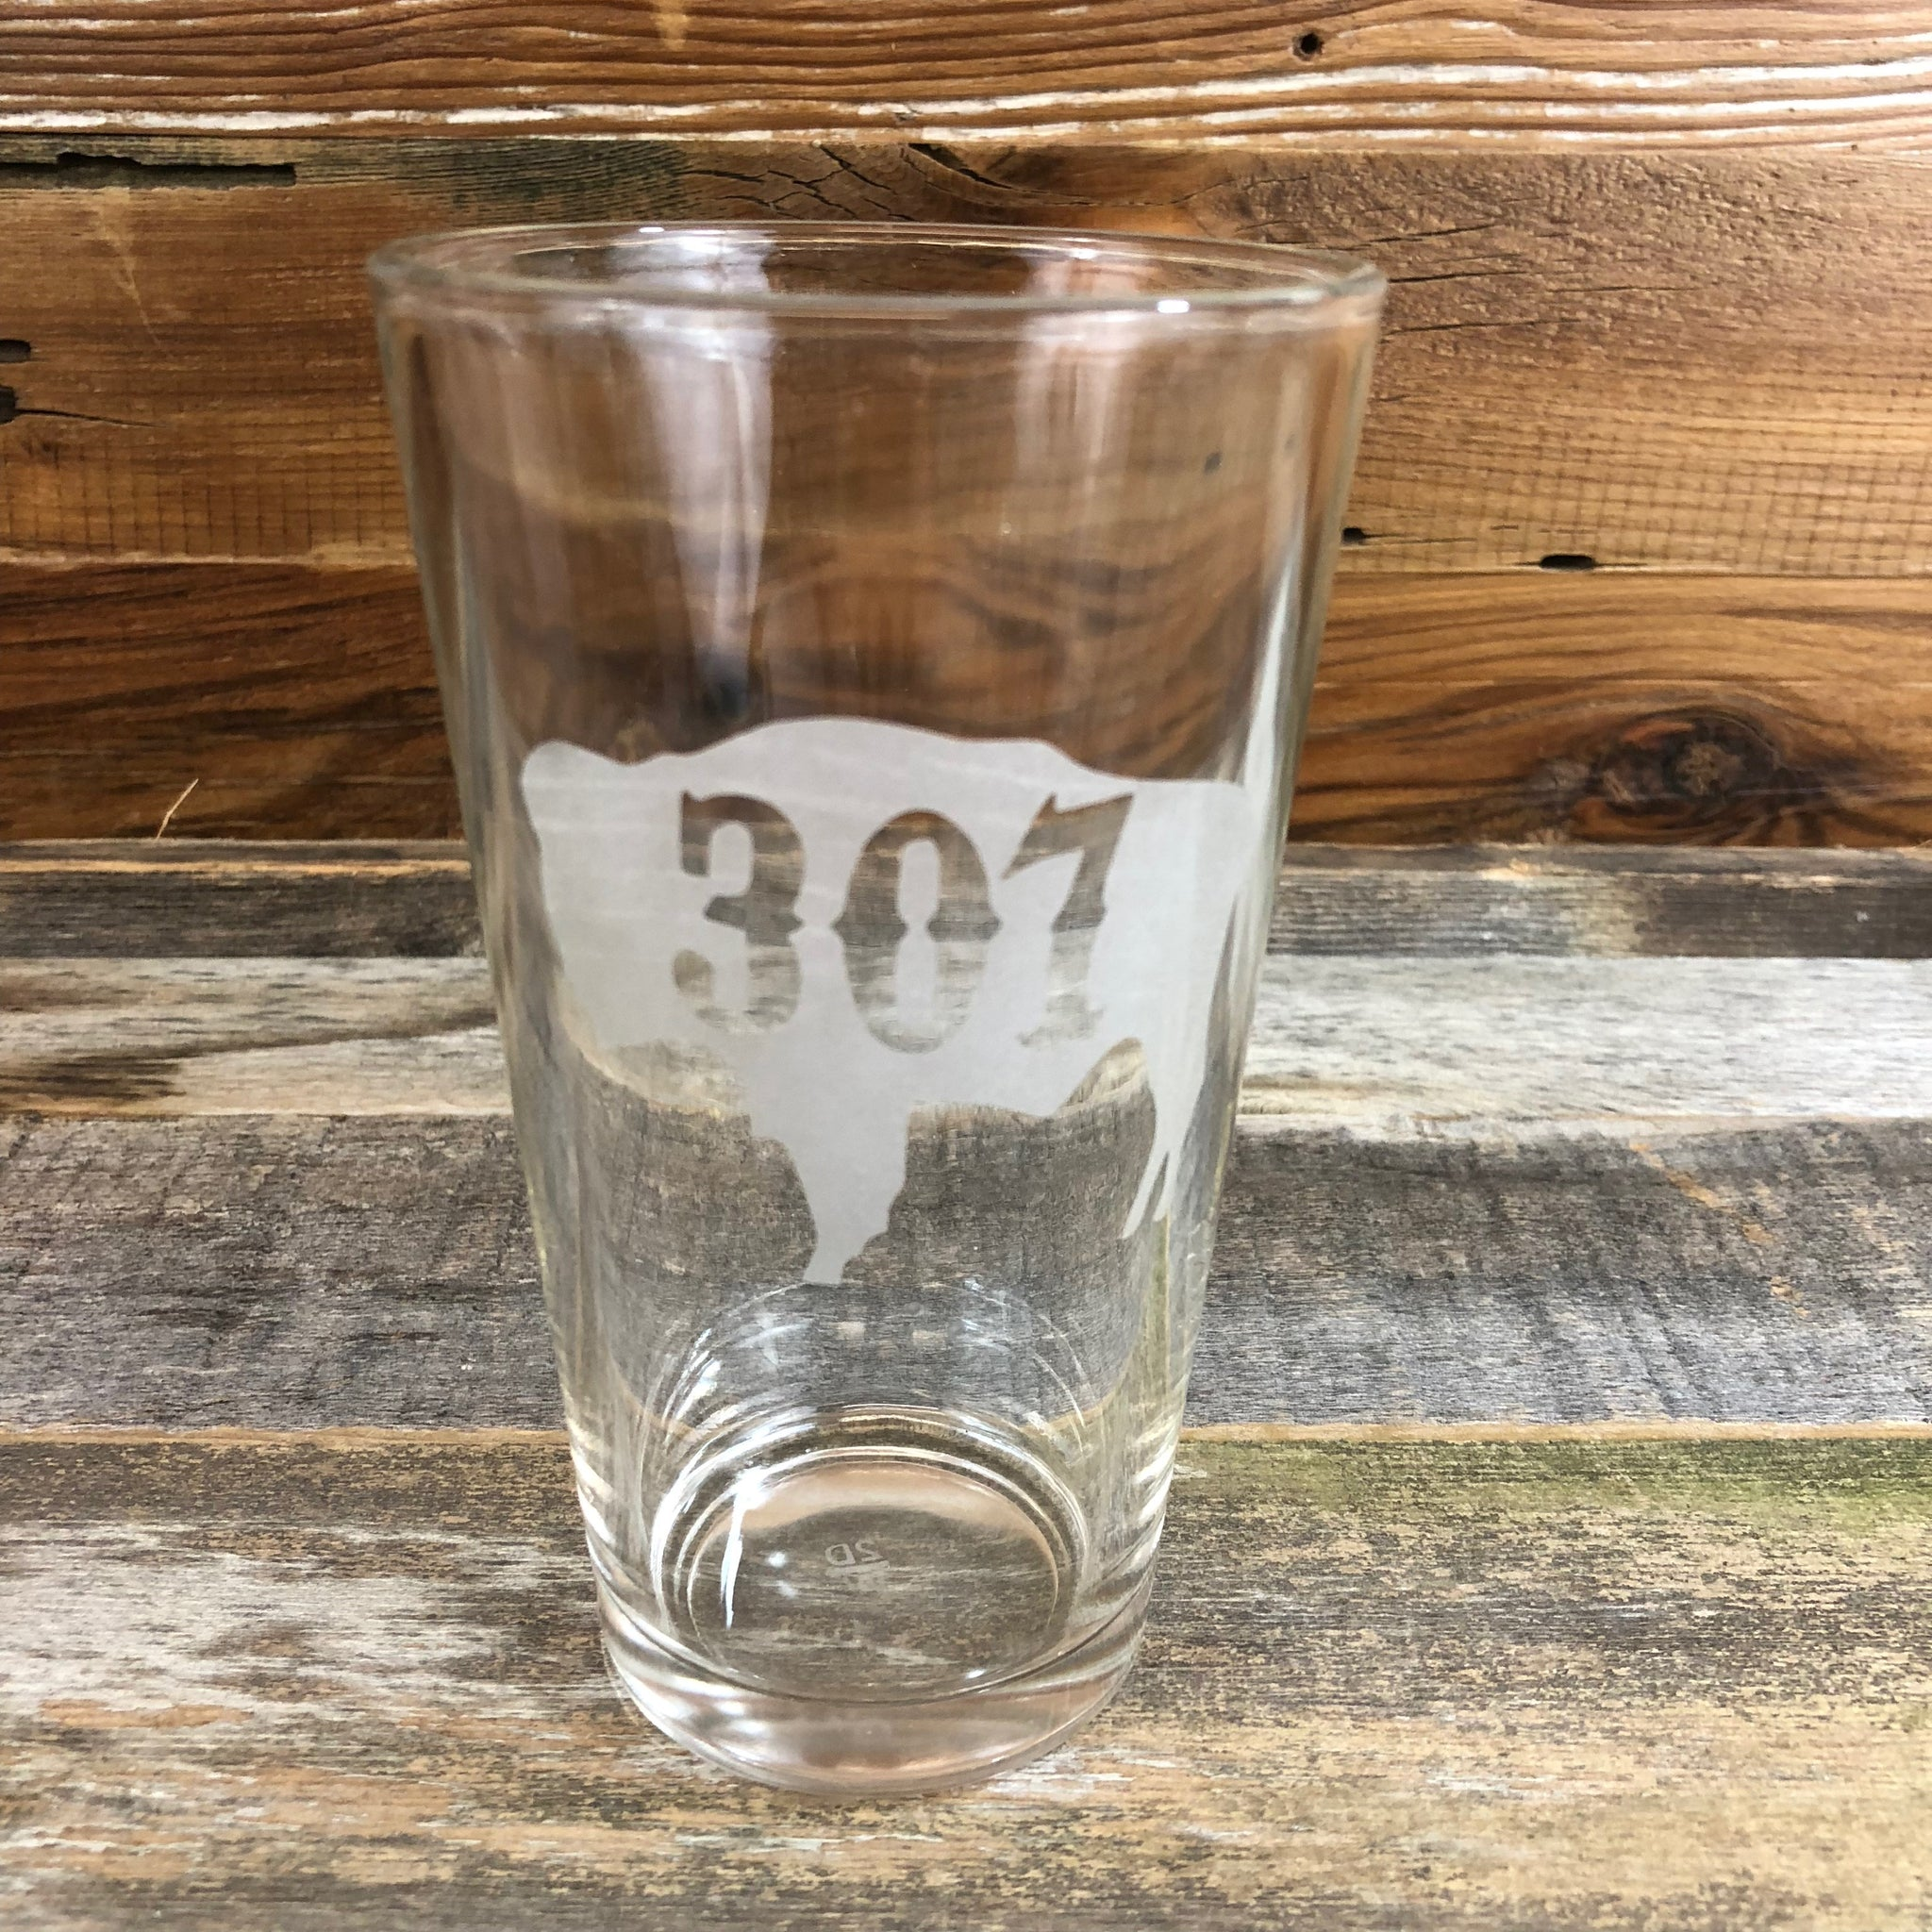 307 Bison Pint Glass Enjoy your favorite beverage in our 16oz capacity pint glass with the '307' designed right into the Wyoming Bison.  Be a part of the herd with a 307 Bison Pint Glass from WyoMade.  Capacity 16 oz    WyoMade is a Wyoming Craft Apparel brand located in the heart of Downtown Casper, Wyoming.